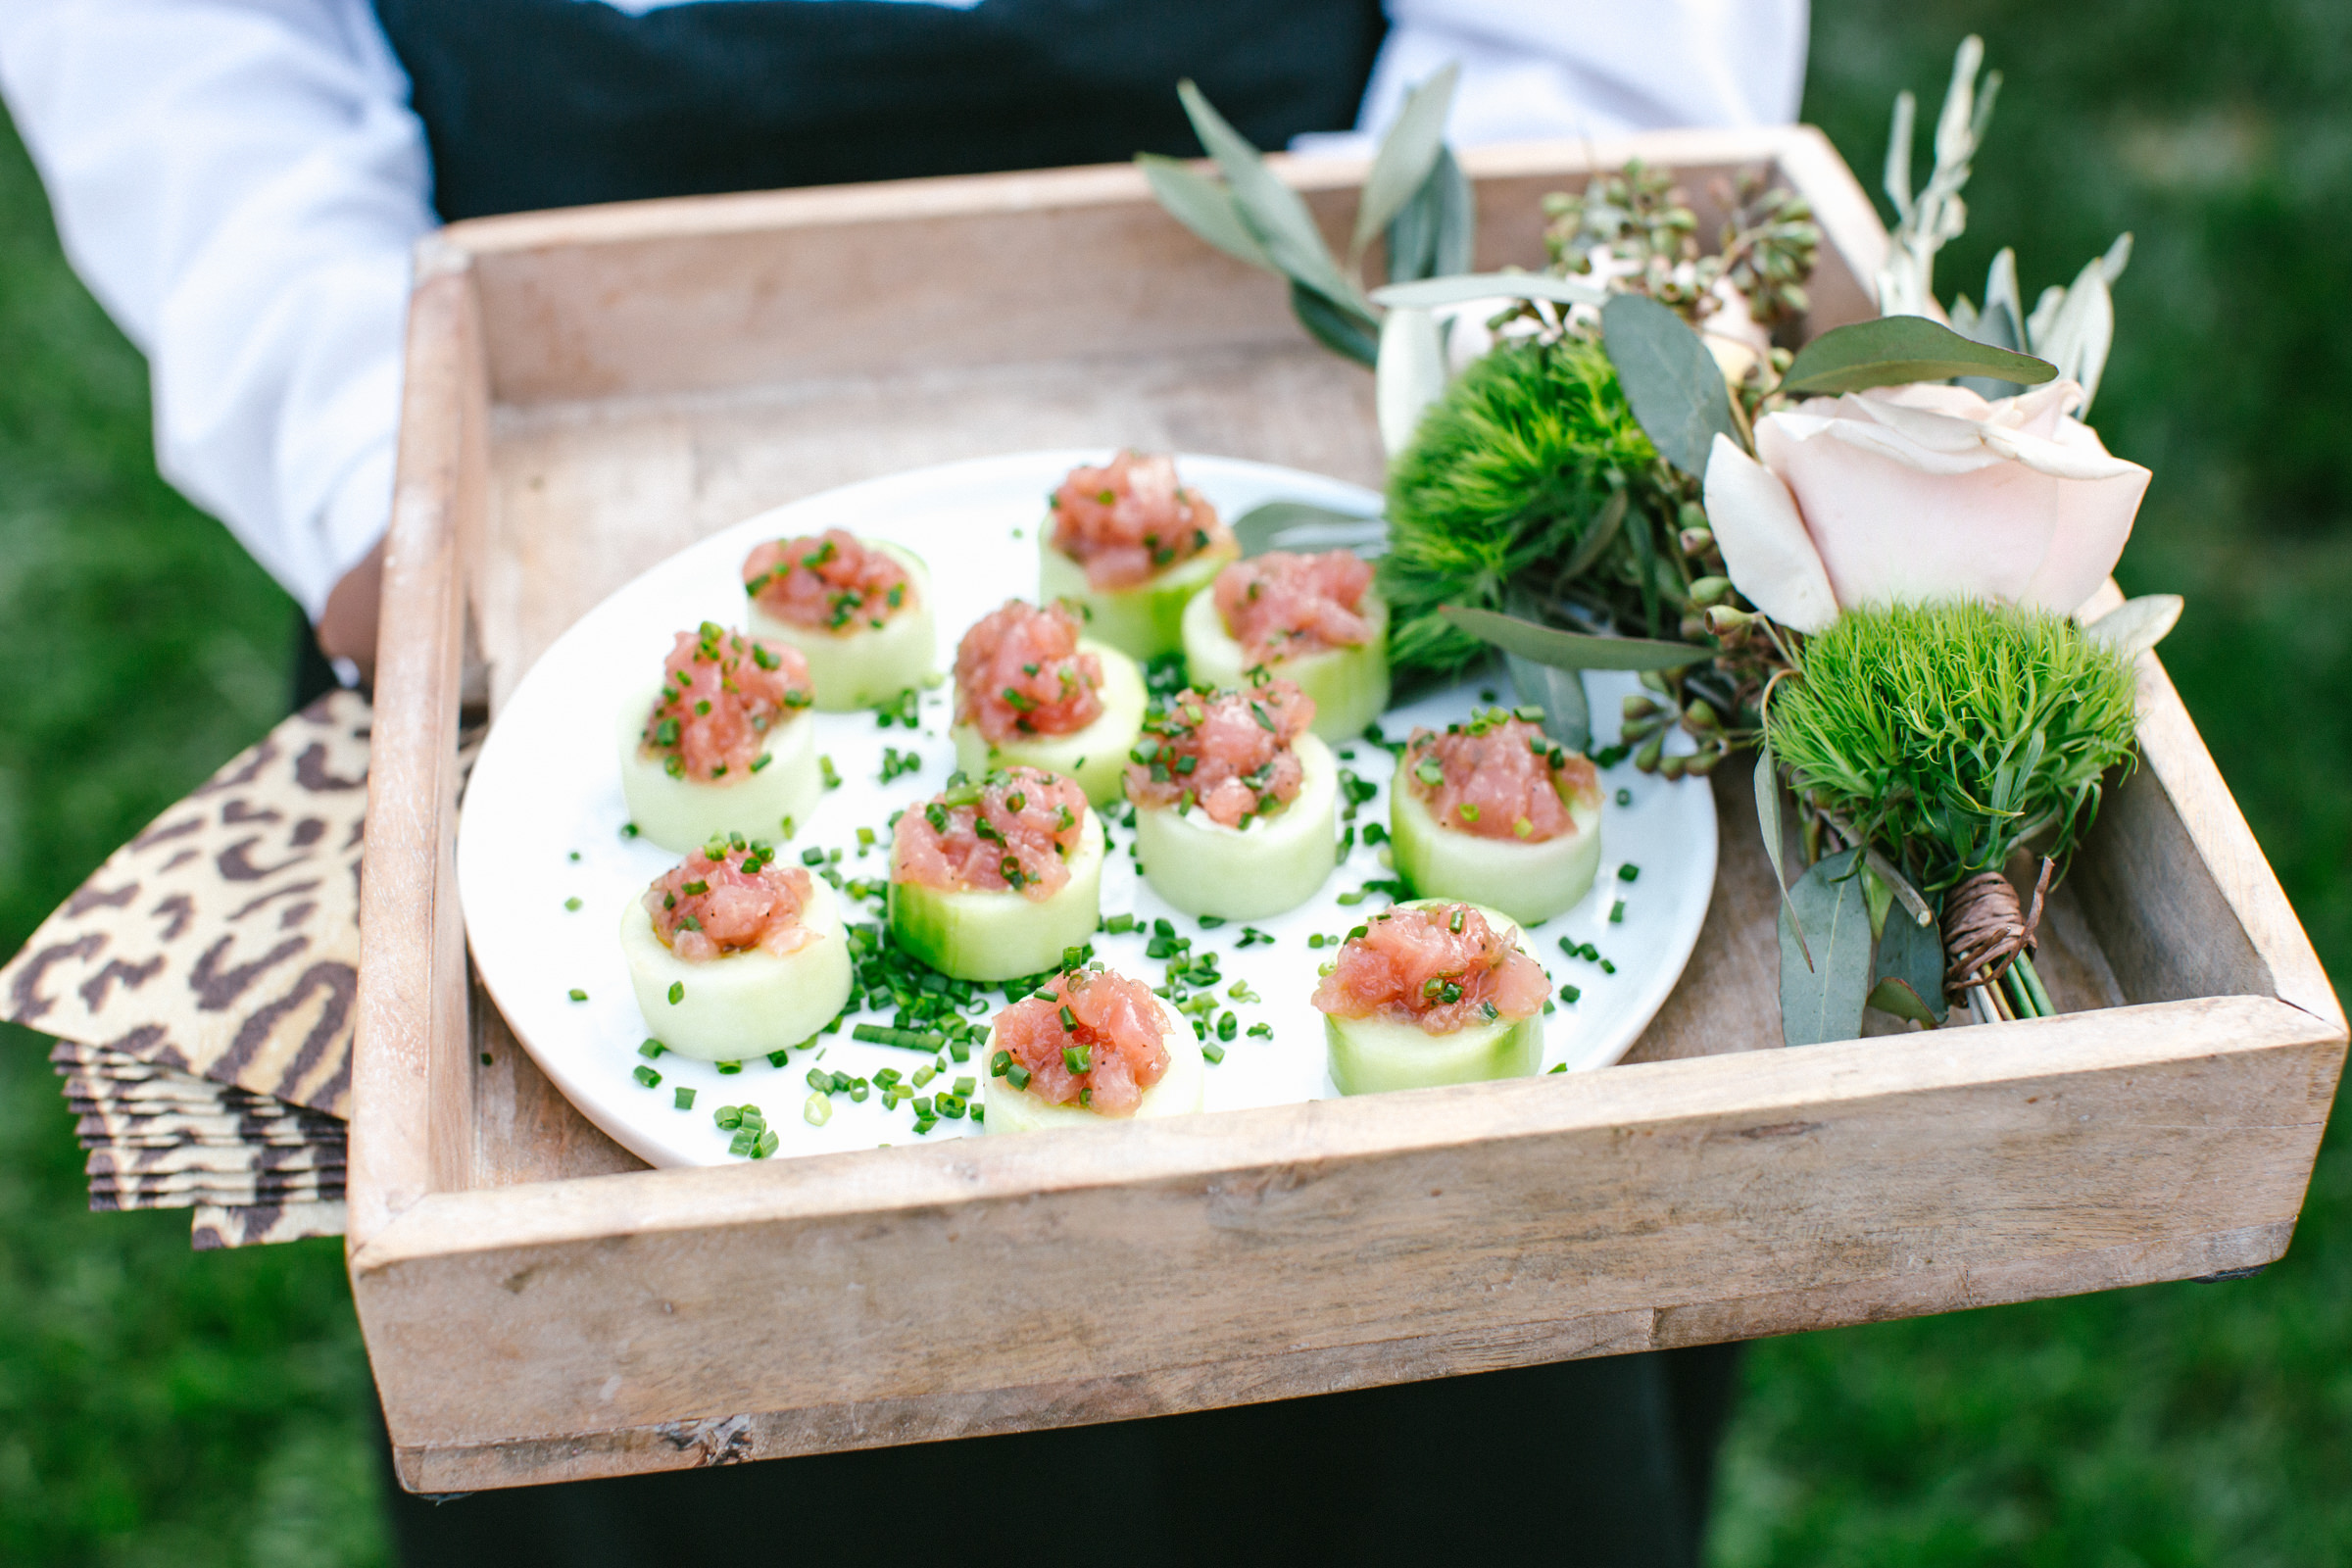 Reception menu cucumber and salmon platter with chives - photo by Amy and Stuart Photography